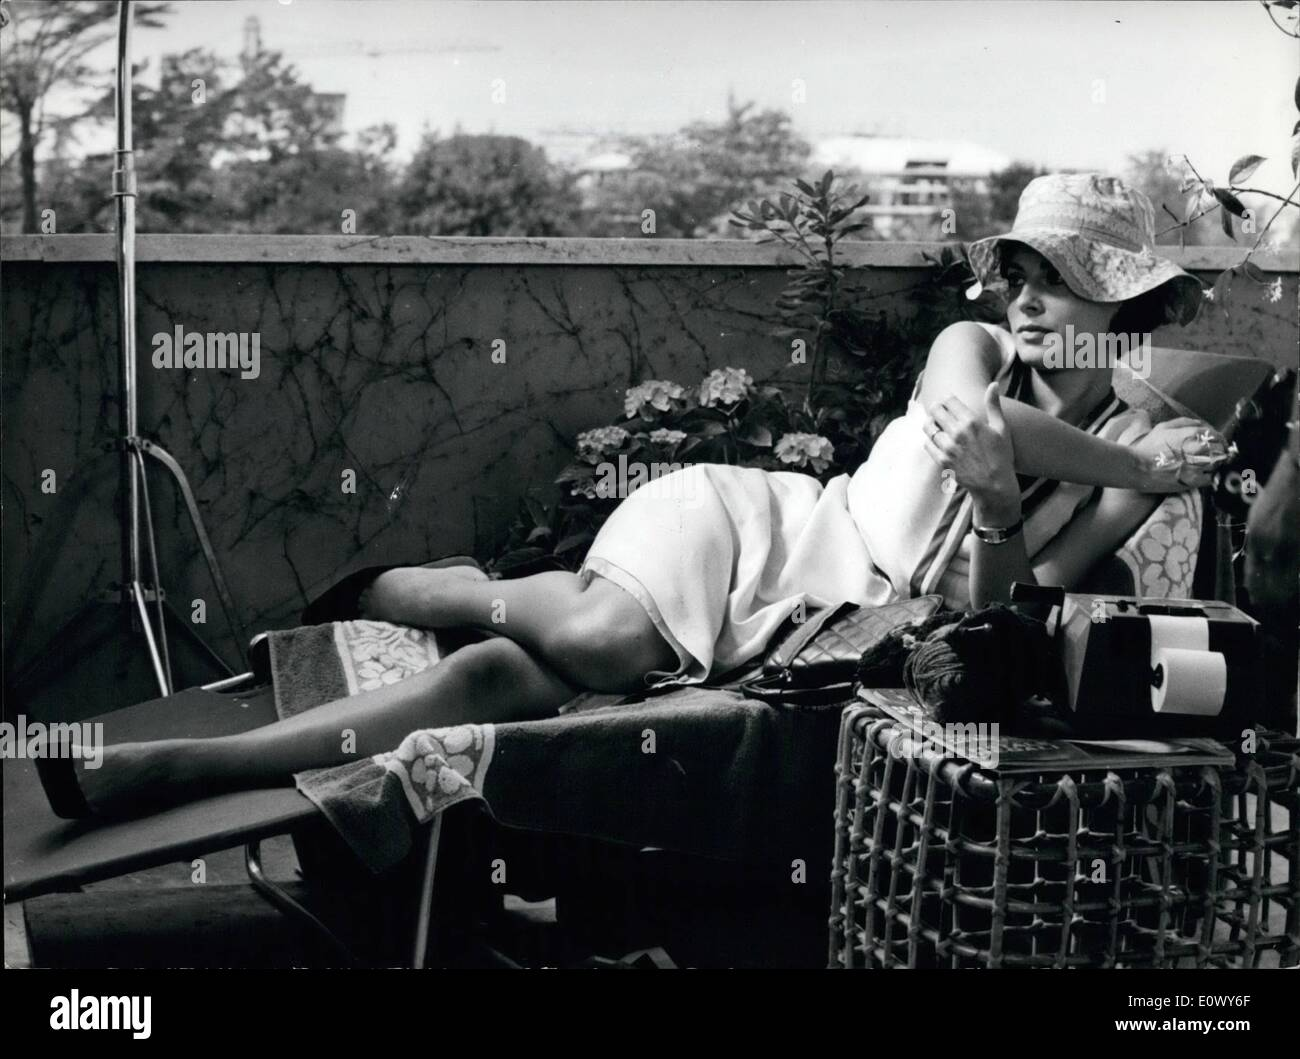 Jun. 06, 1964 - Anna Maria Ferrero the italian film star wife of French actor Jean Sorel is in Rome; for the first time since she married, the actress has began the shooting of a new film: a comic story ''Cocaine la dimanche'' with well-known italian comic actor Nino Manfredi. - Stock Image